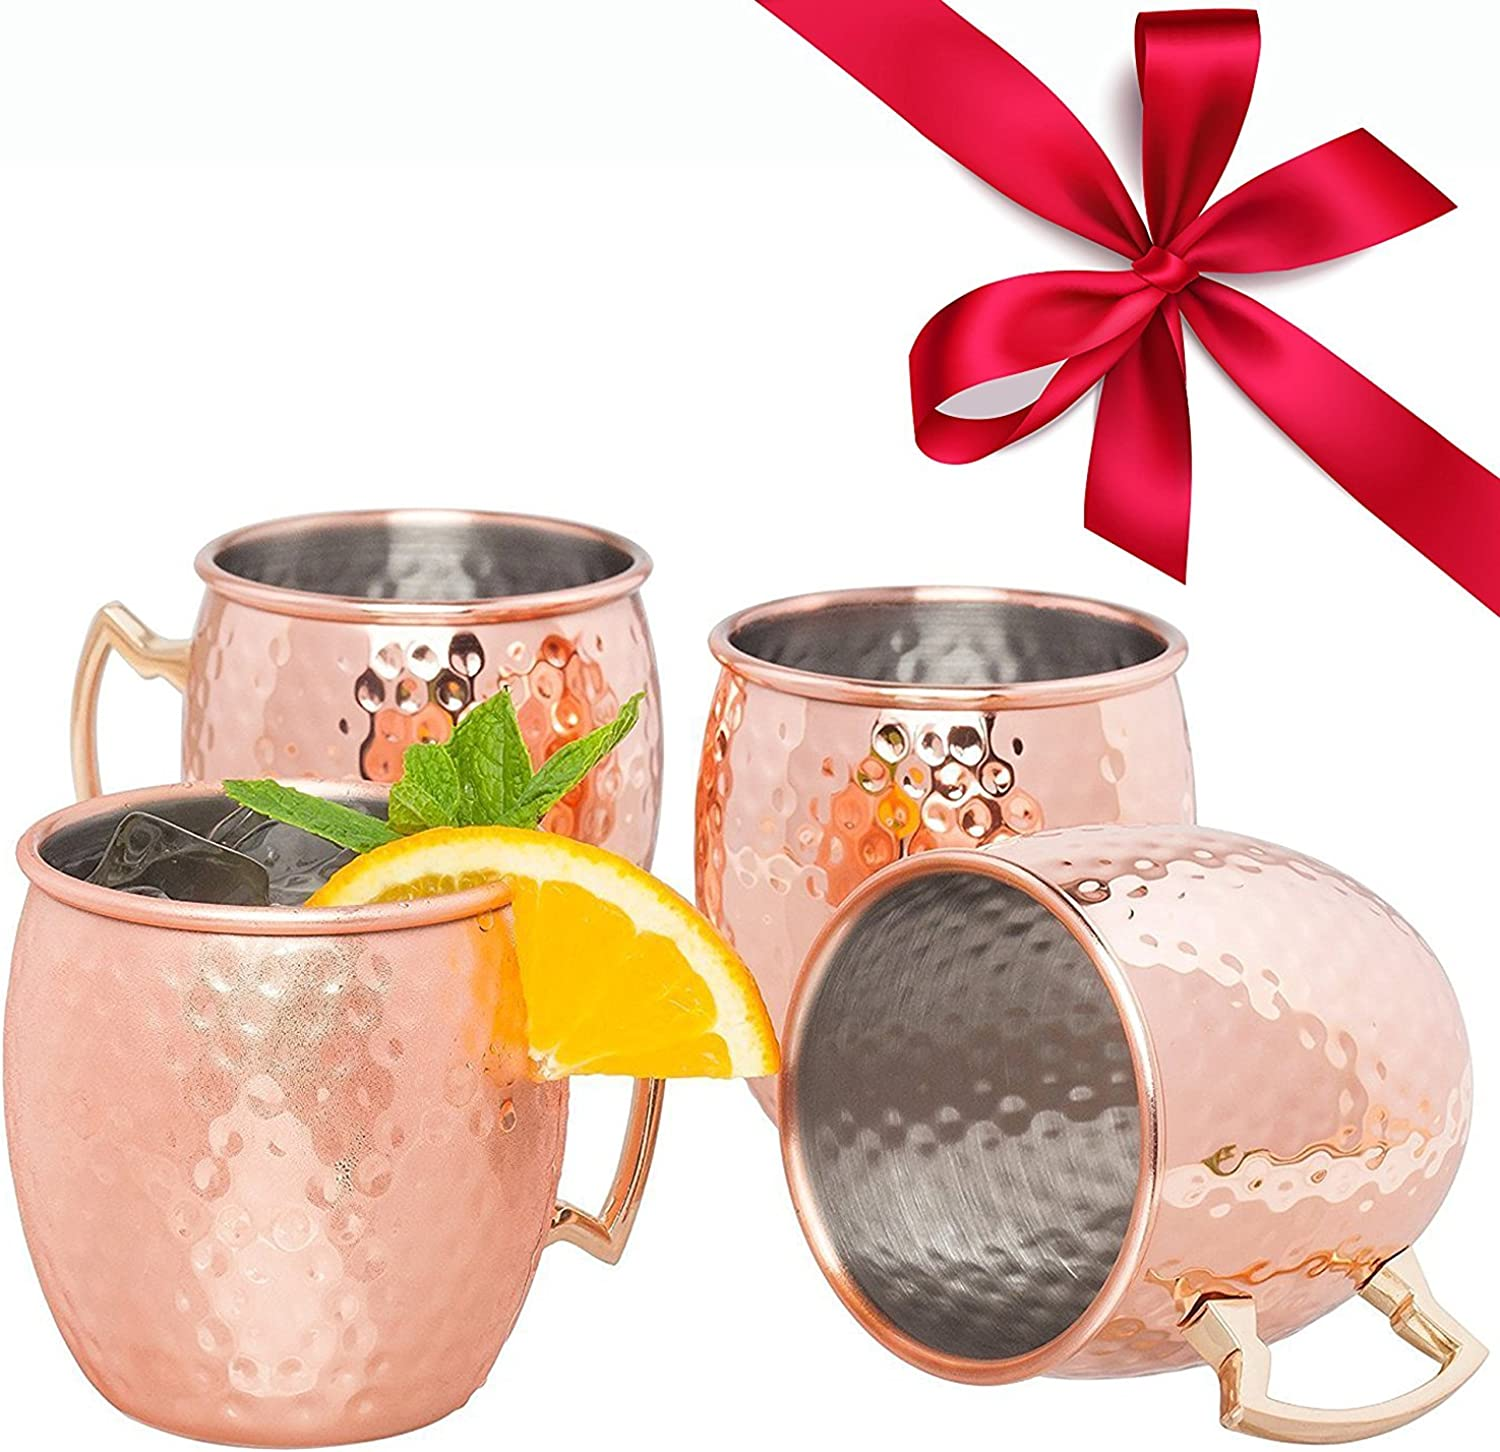 Moscow Mule Copper Mugs Set of 4 – 18oz Hand Hammered Moscow Mule Mugs with Stainless Steel Lining, Drinking Mug Moscow Mule Gift Set and Cocktail Recipes eBook